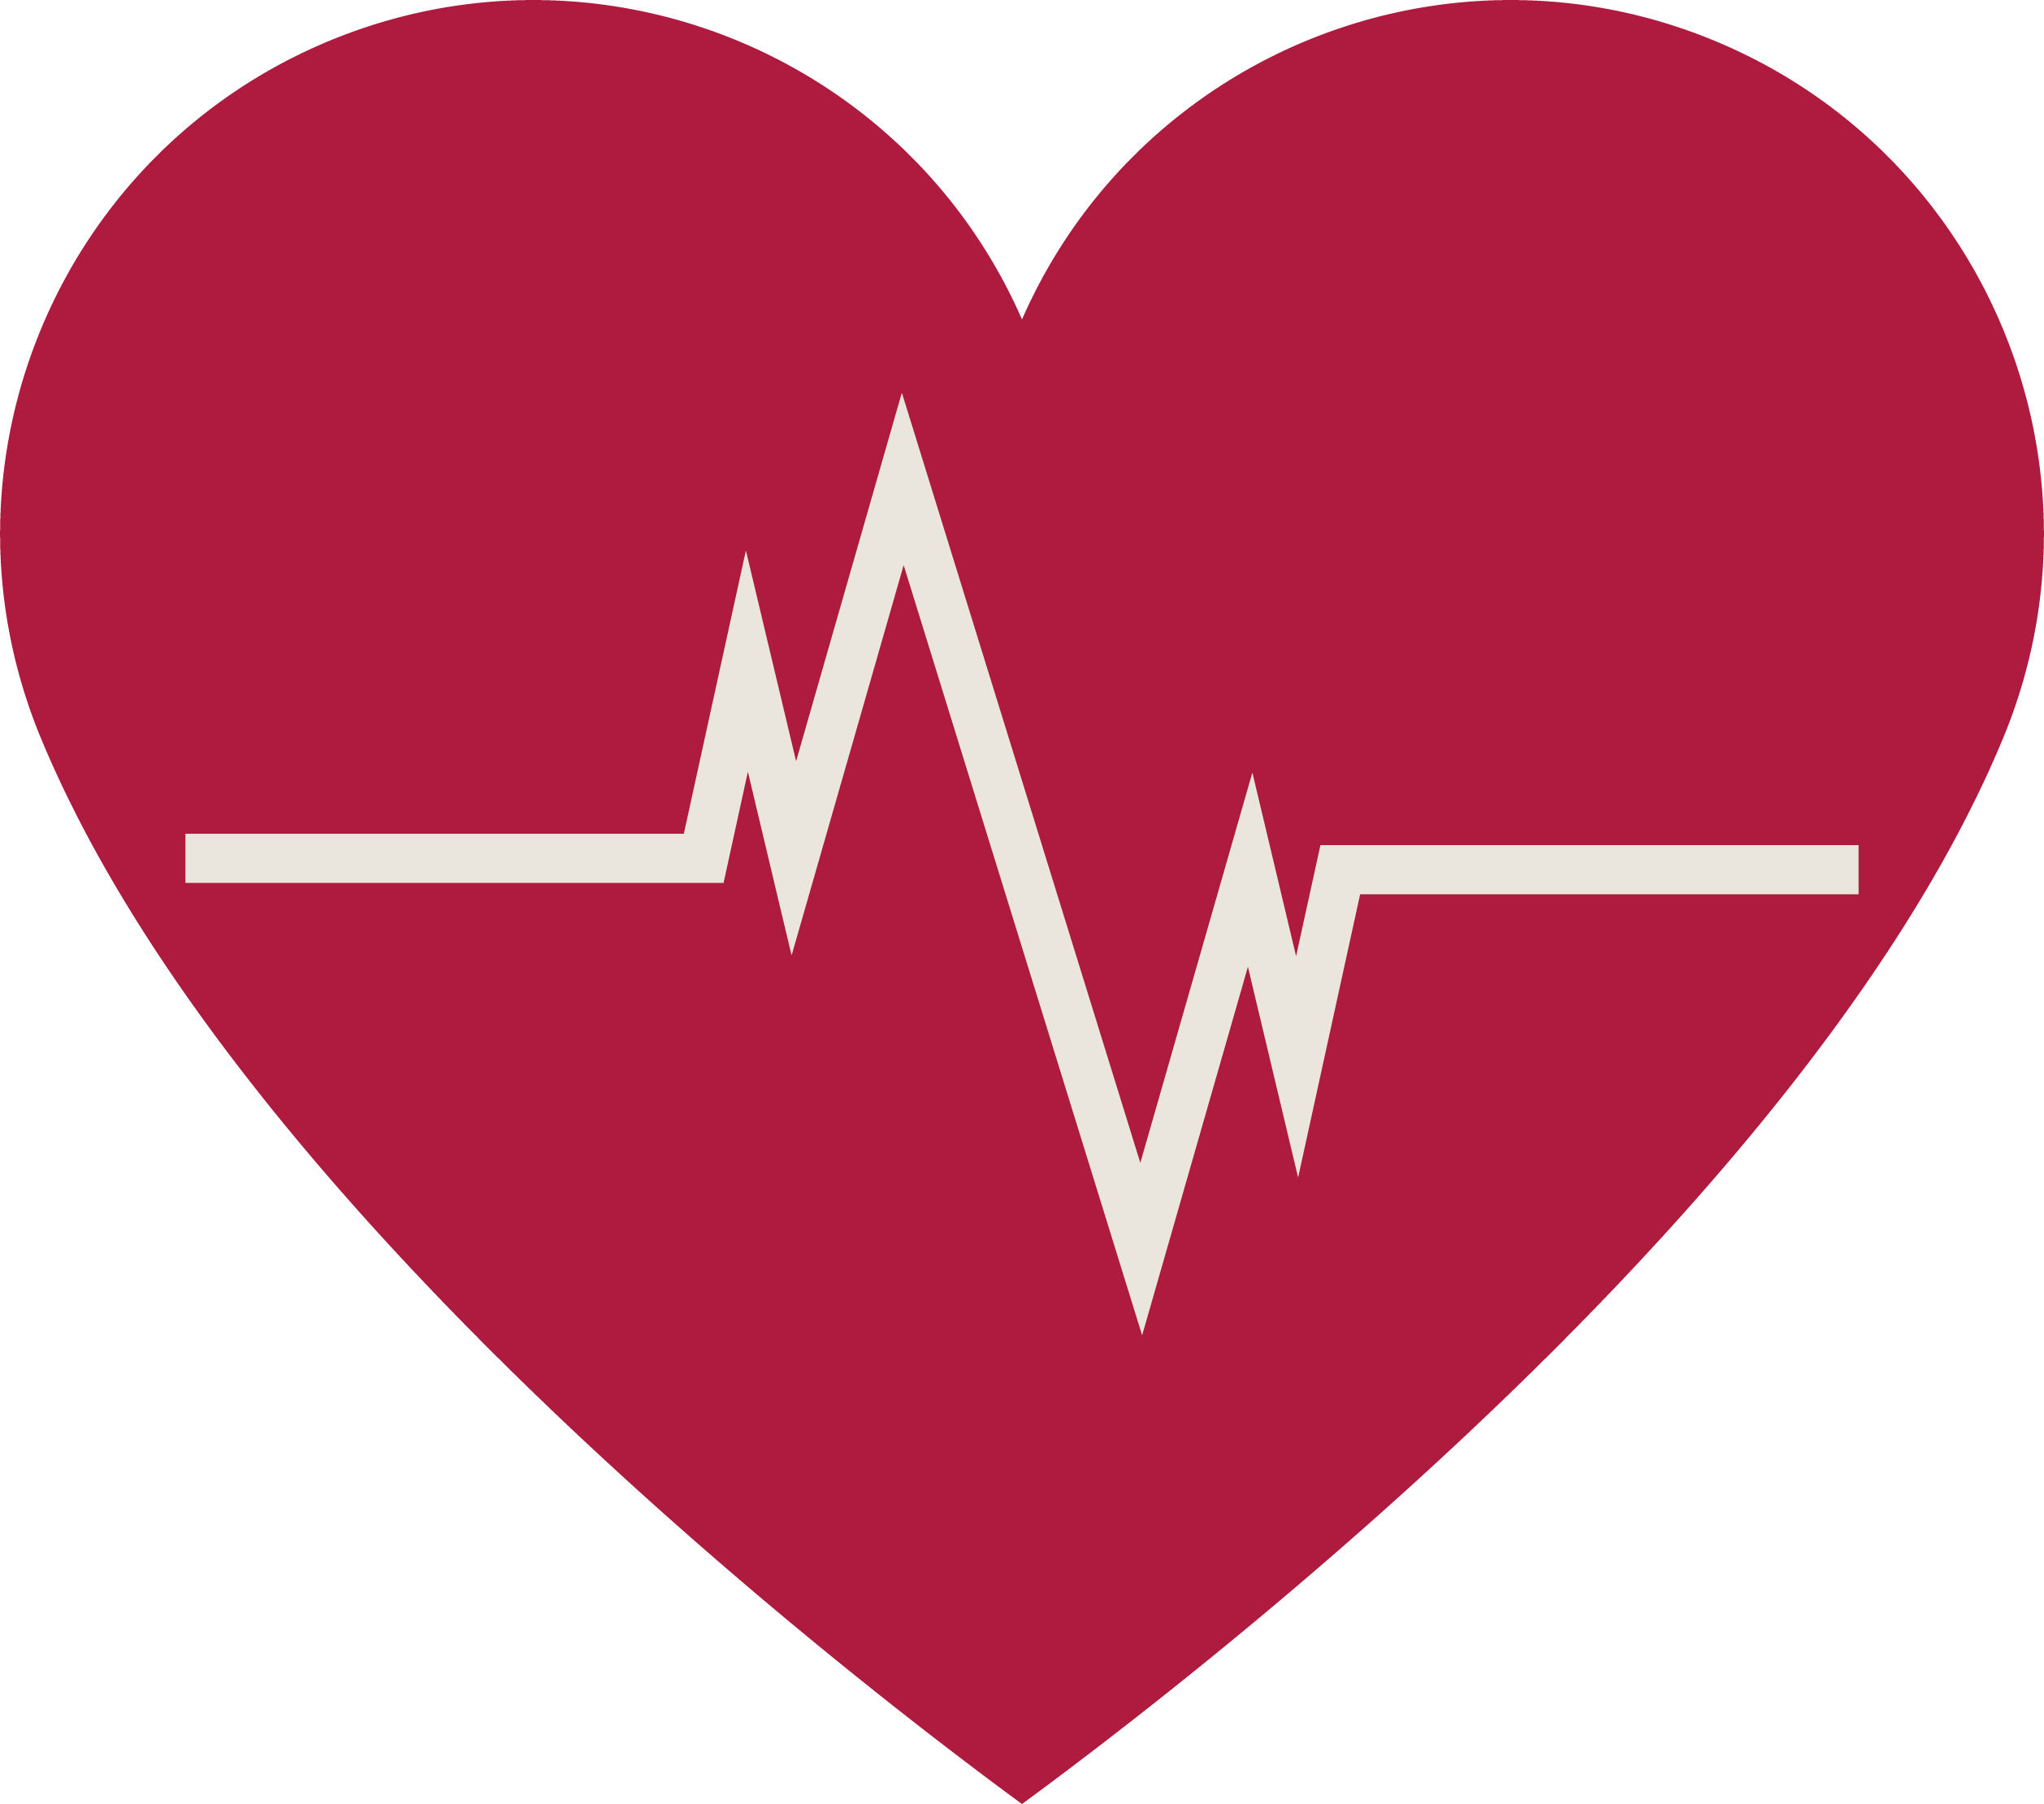 Heart with heartbeat png. Beat transprent free download